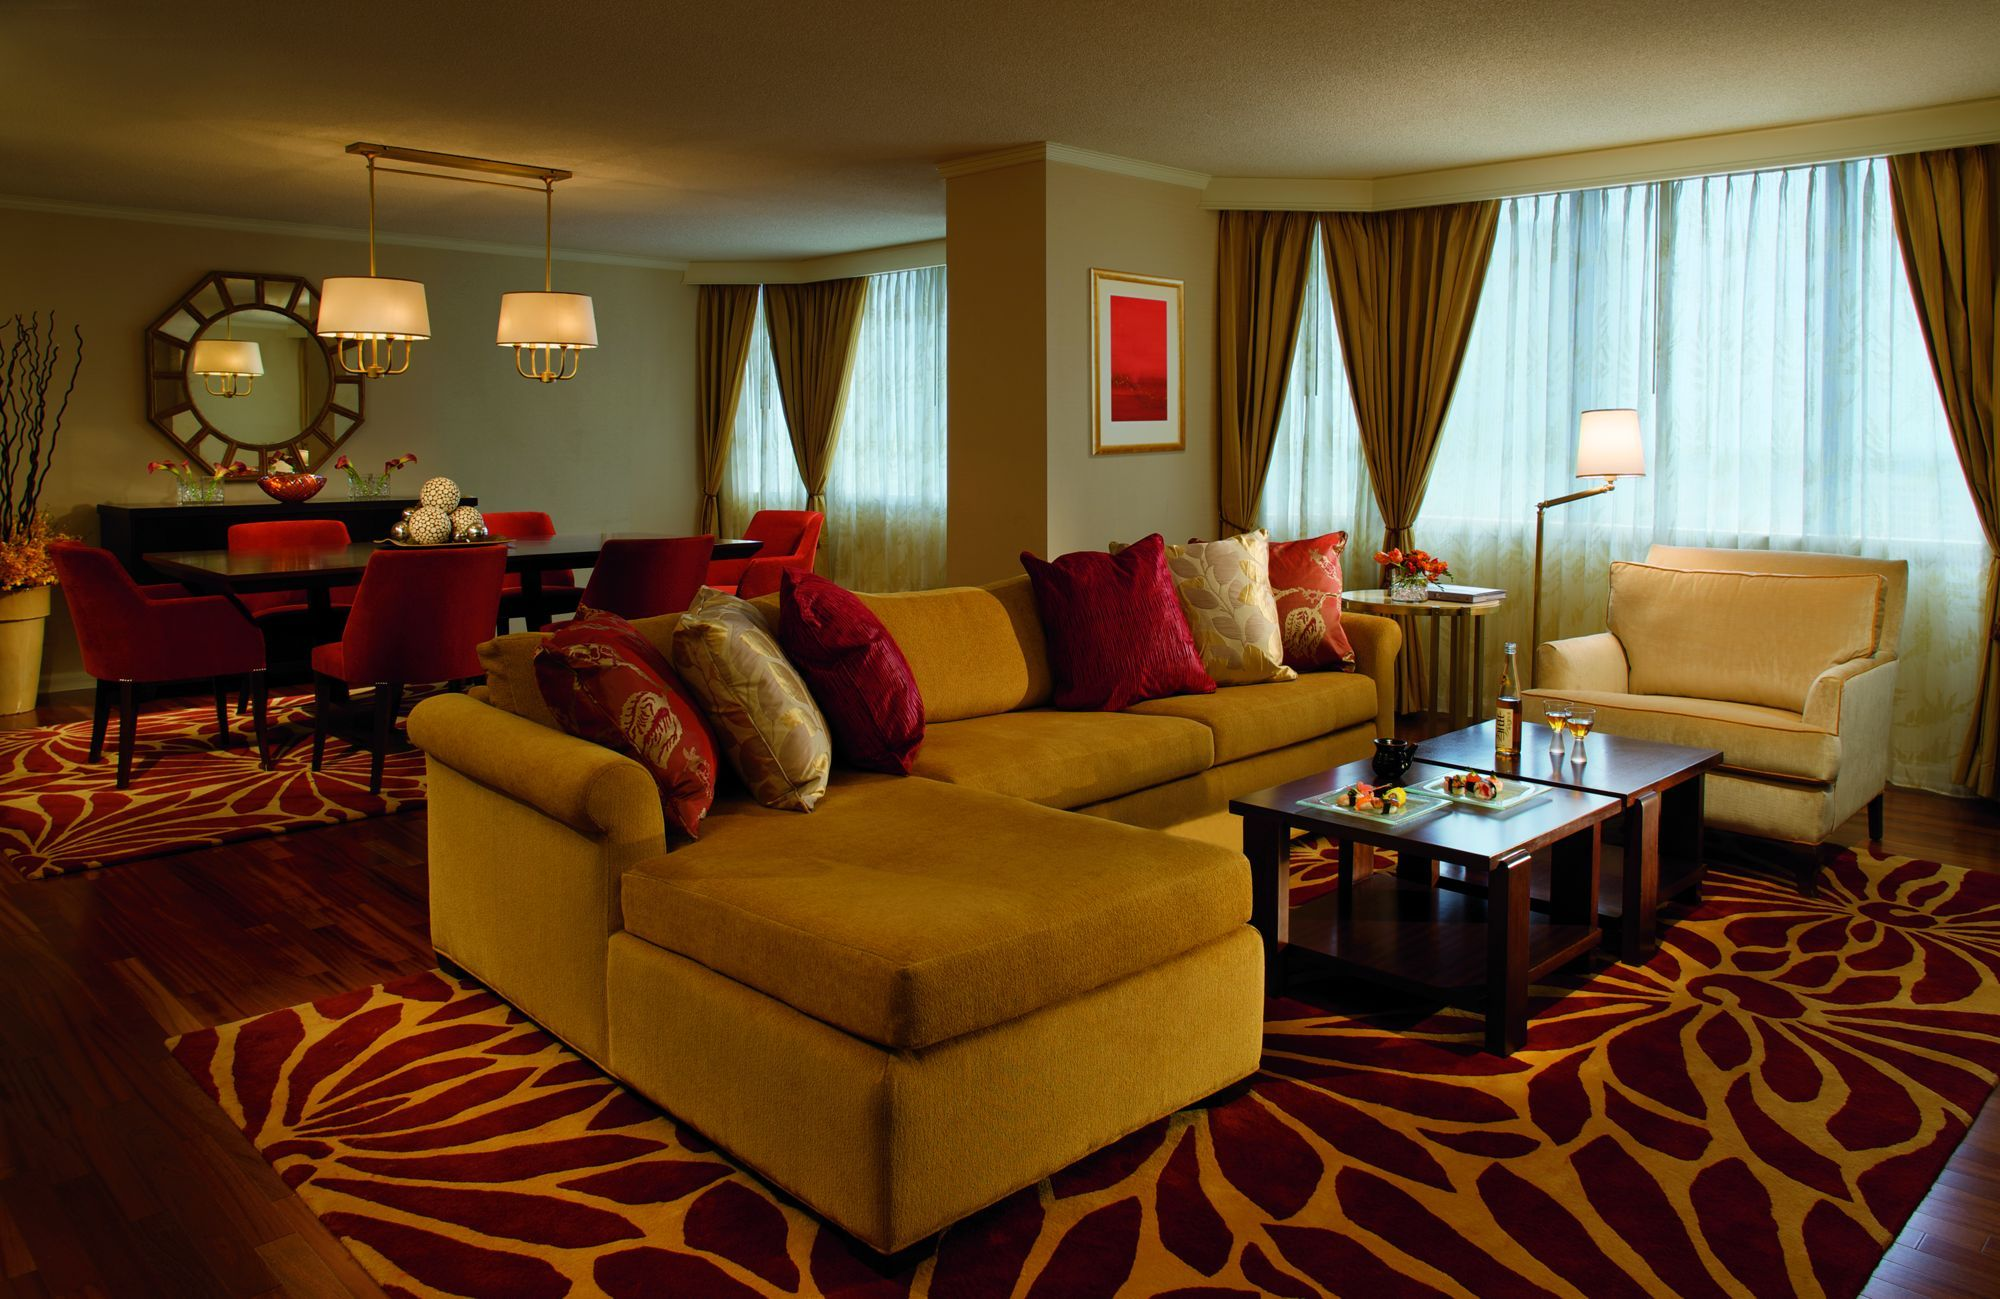 Luxury Hotels Resorts The Ritz Carlton Sophisticated Living Rooms Luxury Hotel Home Decor